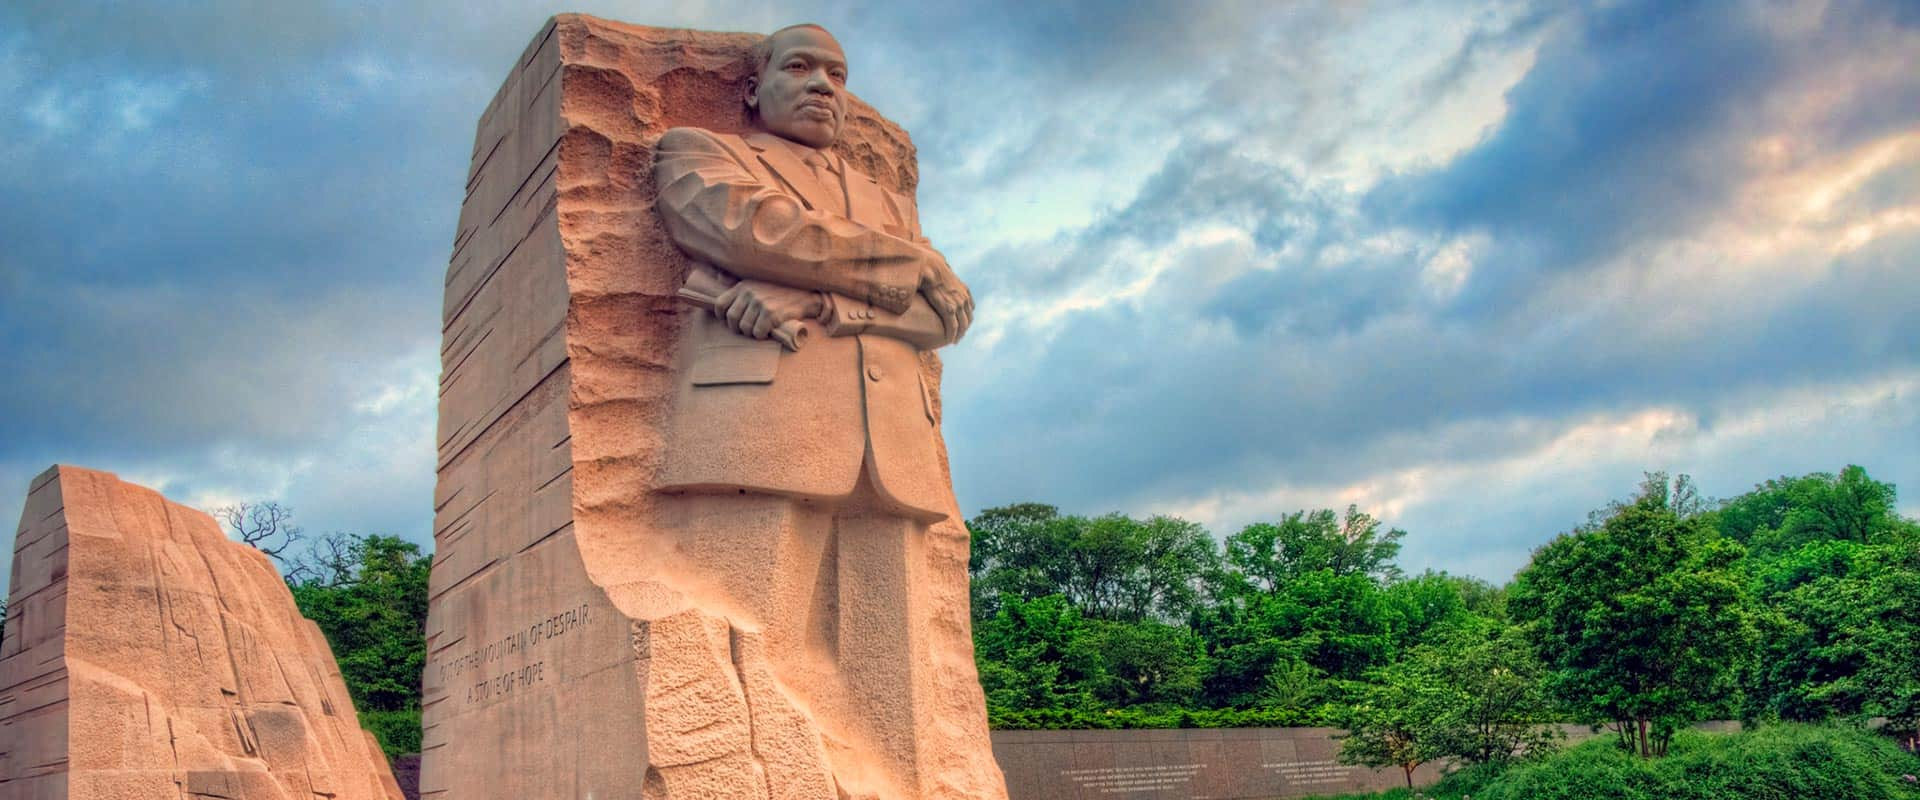 I Have A Dream: What Paul Scholars Can Learn from Martin Luther King Jr.